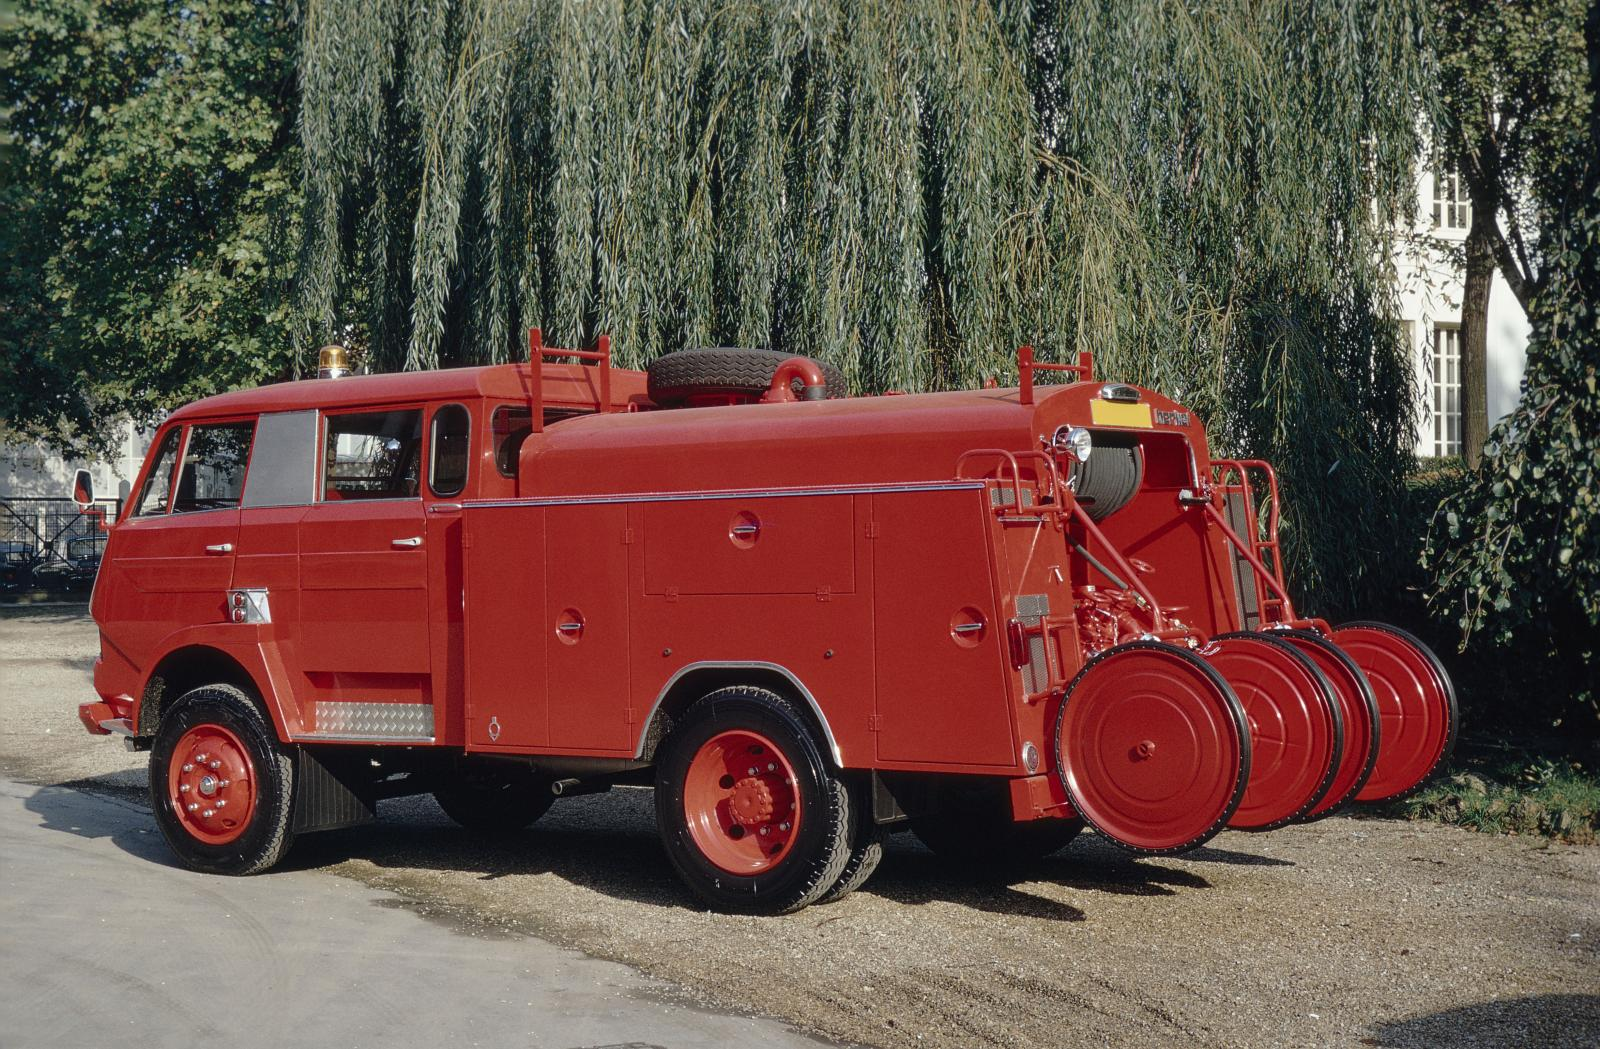 Type 350 Firefighters - 1968